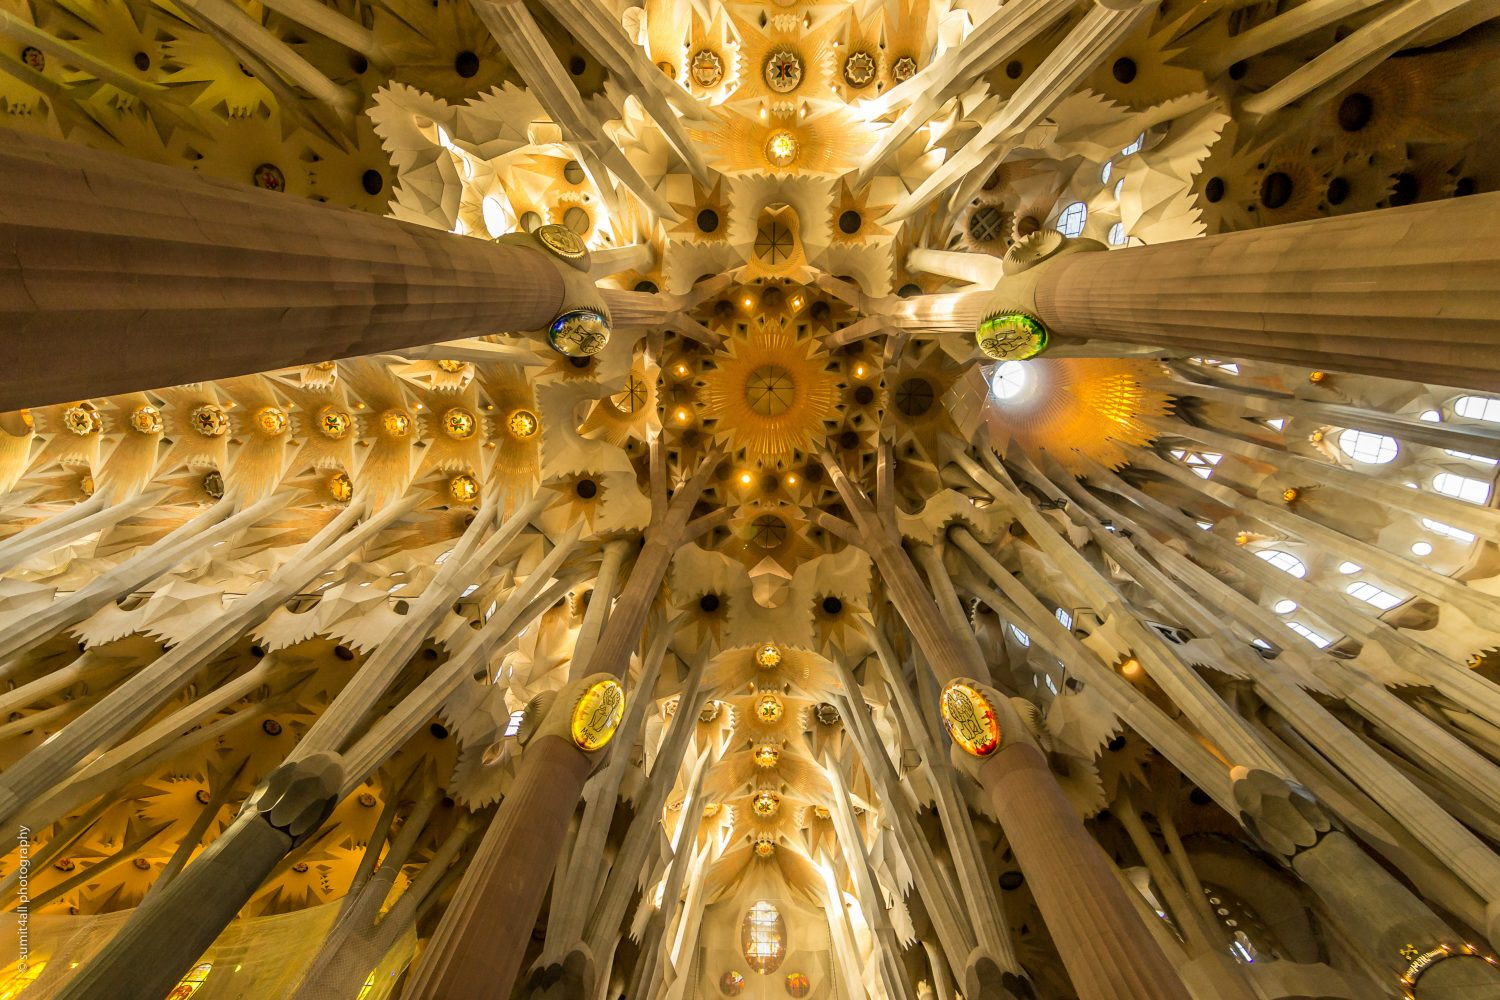 The inside of the Sagrada Familia with the remarkable roof in Barcelona Spain